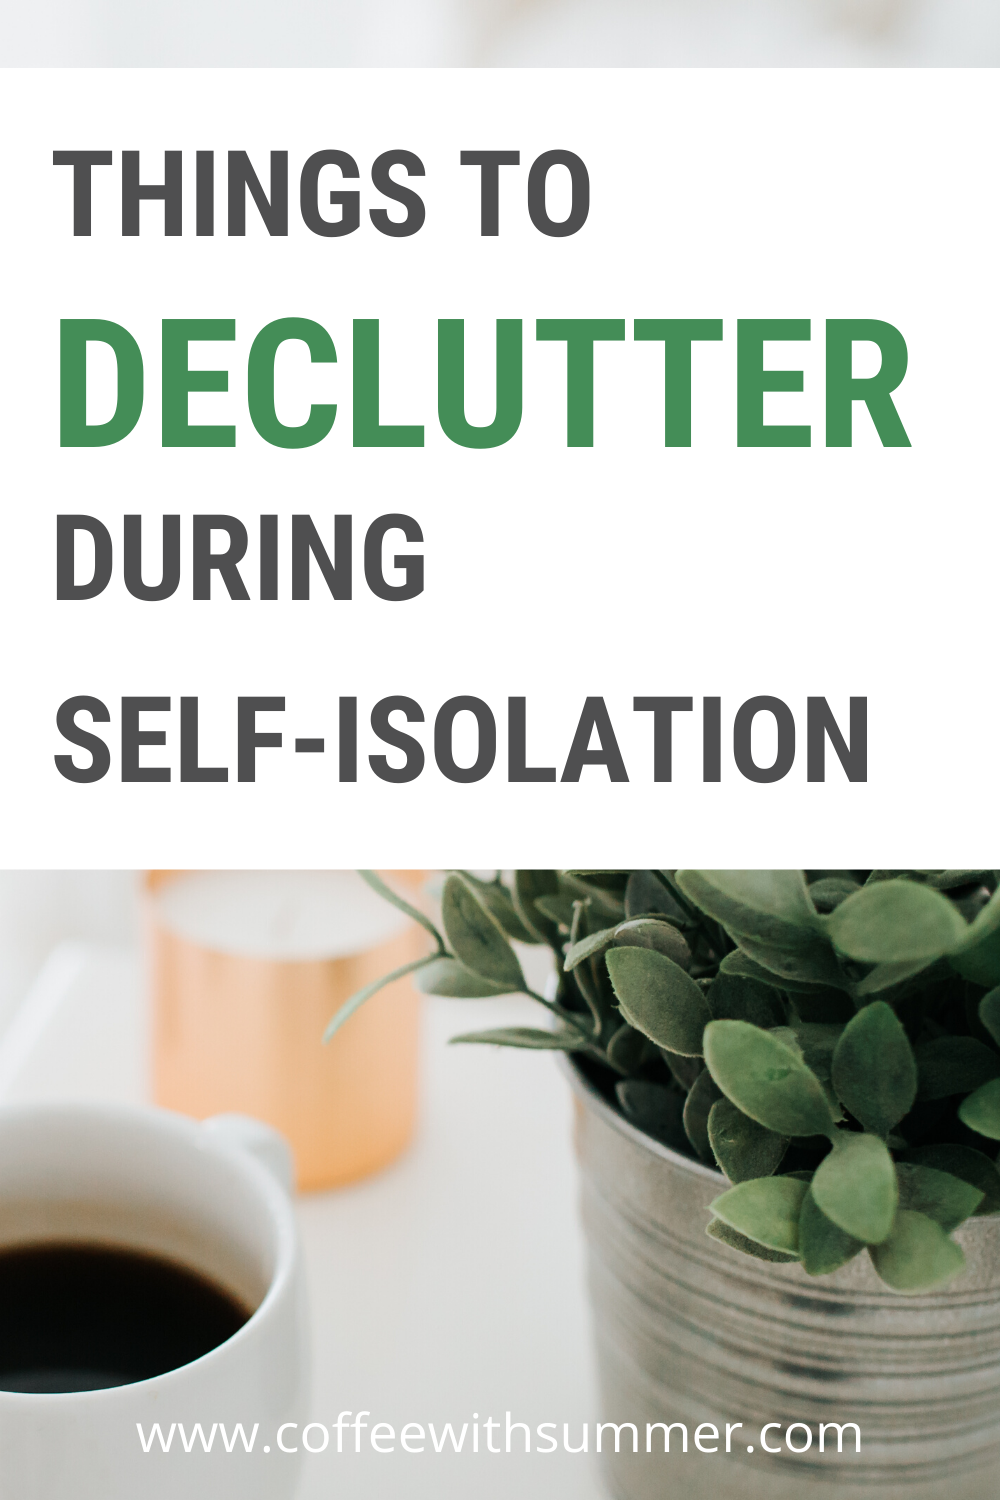 Things to Declutter During Self-Isolation